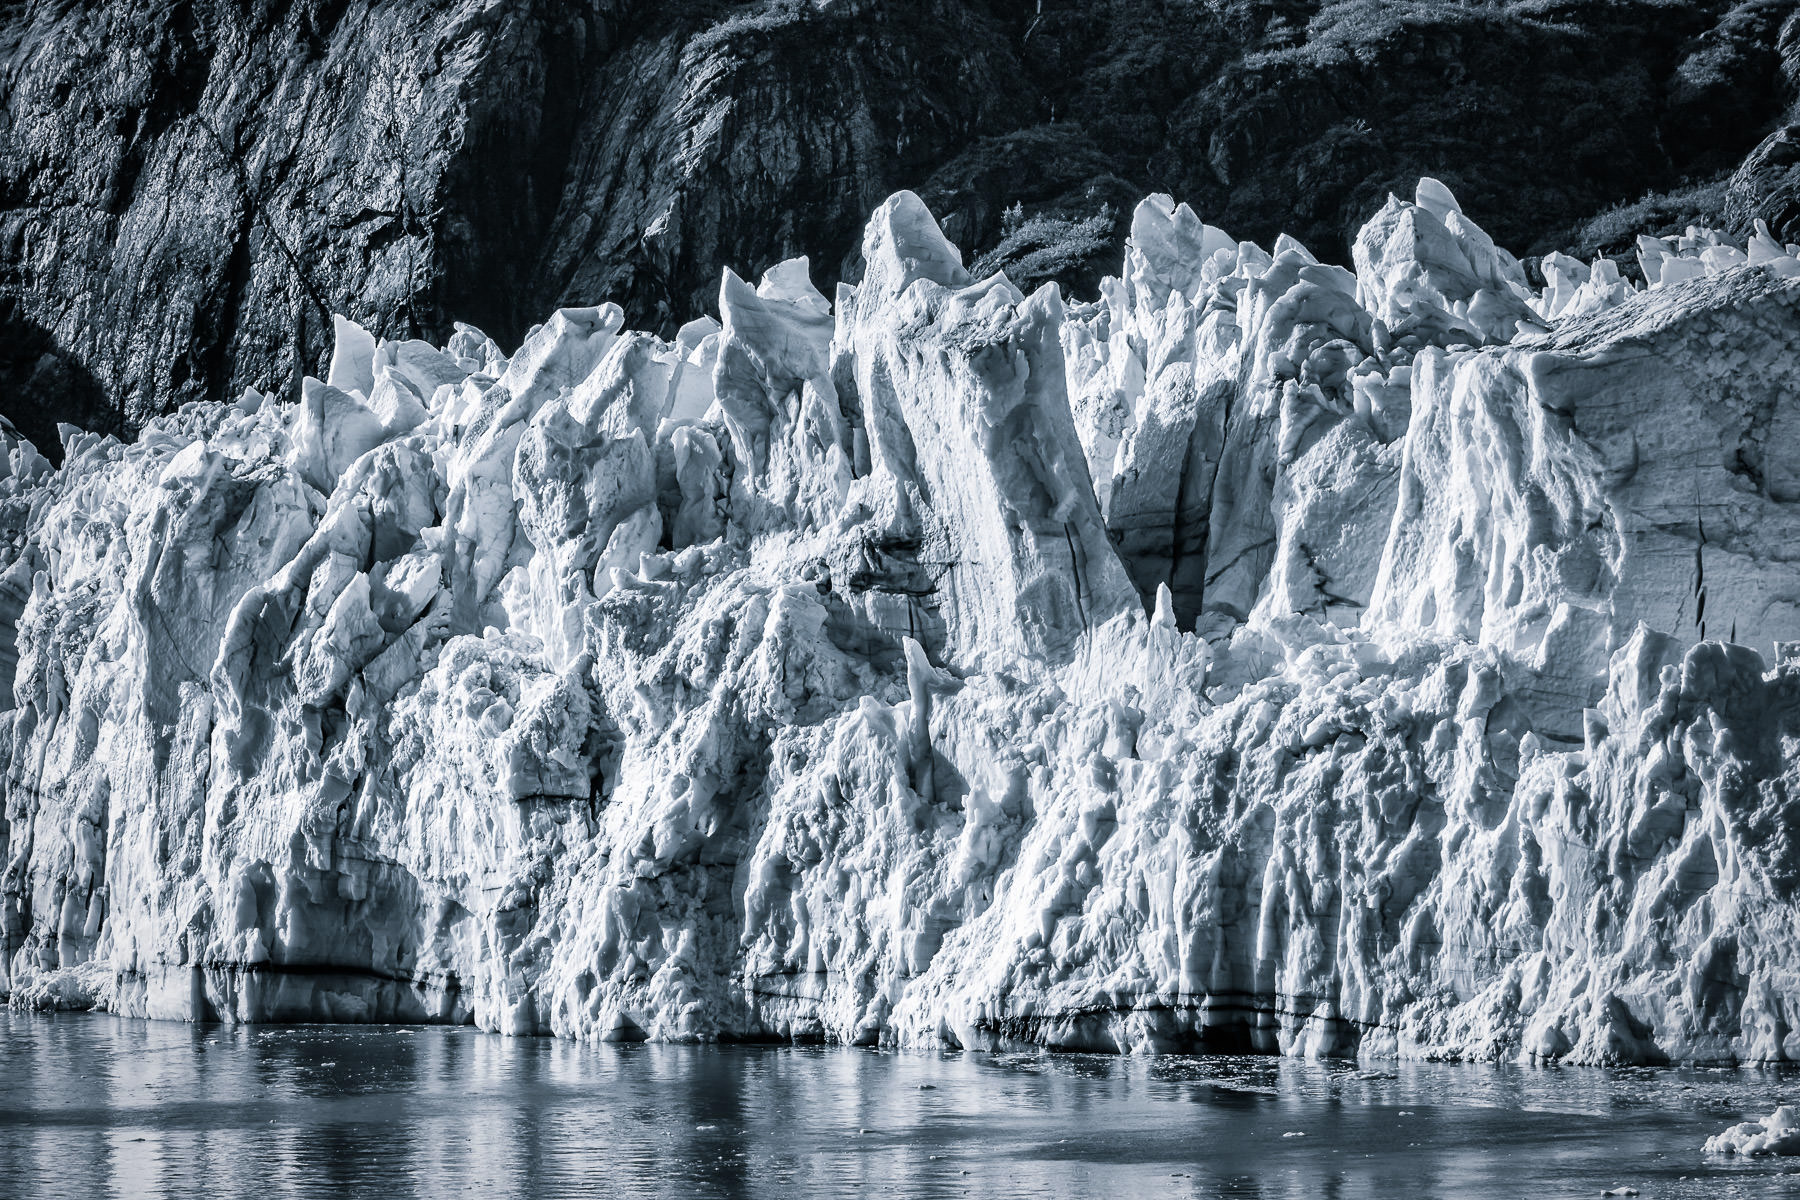 Detail of a jagged glacier at Glacier Bay National Park, Alaska.